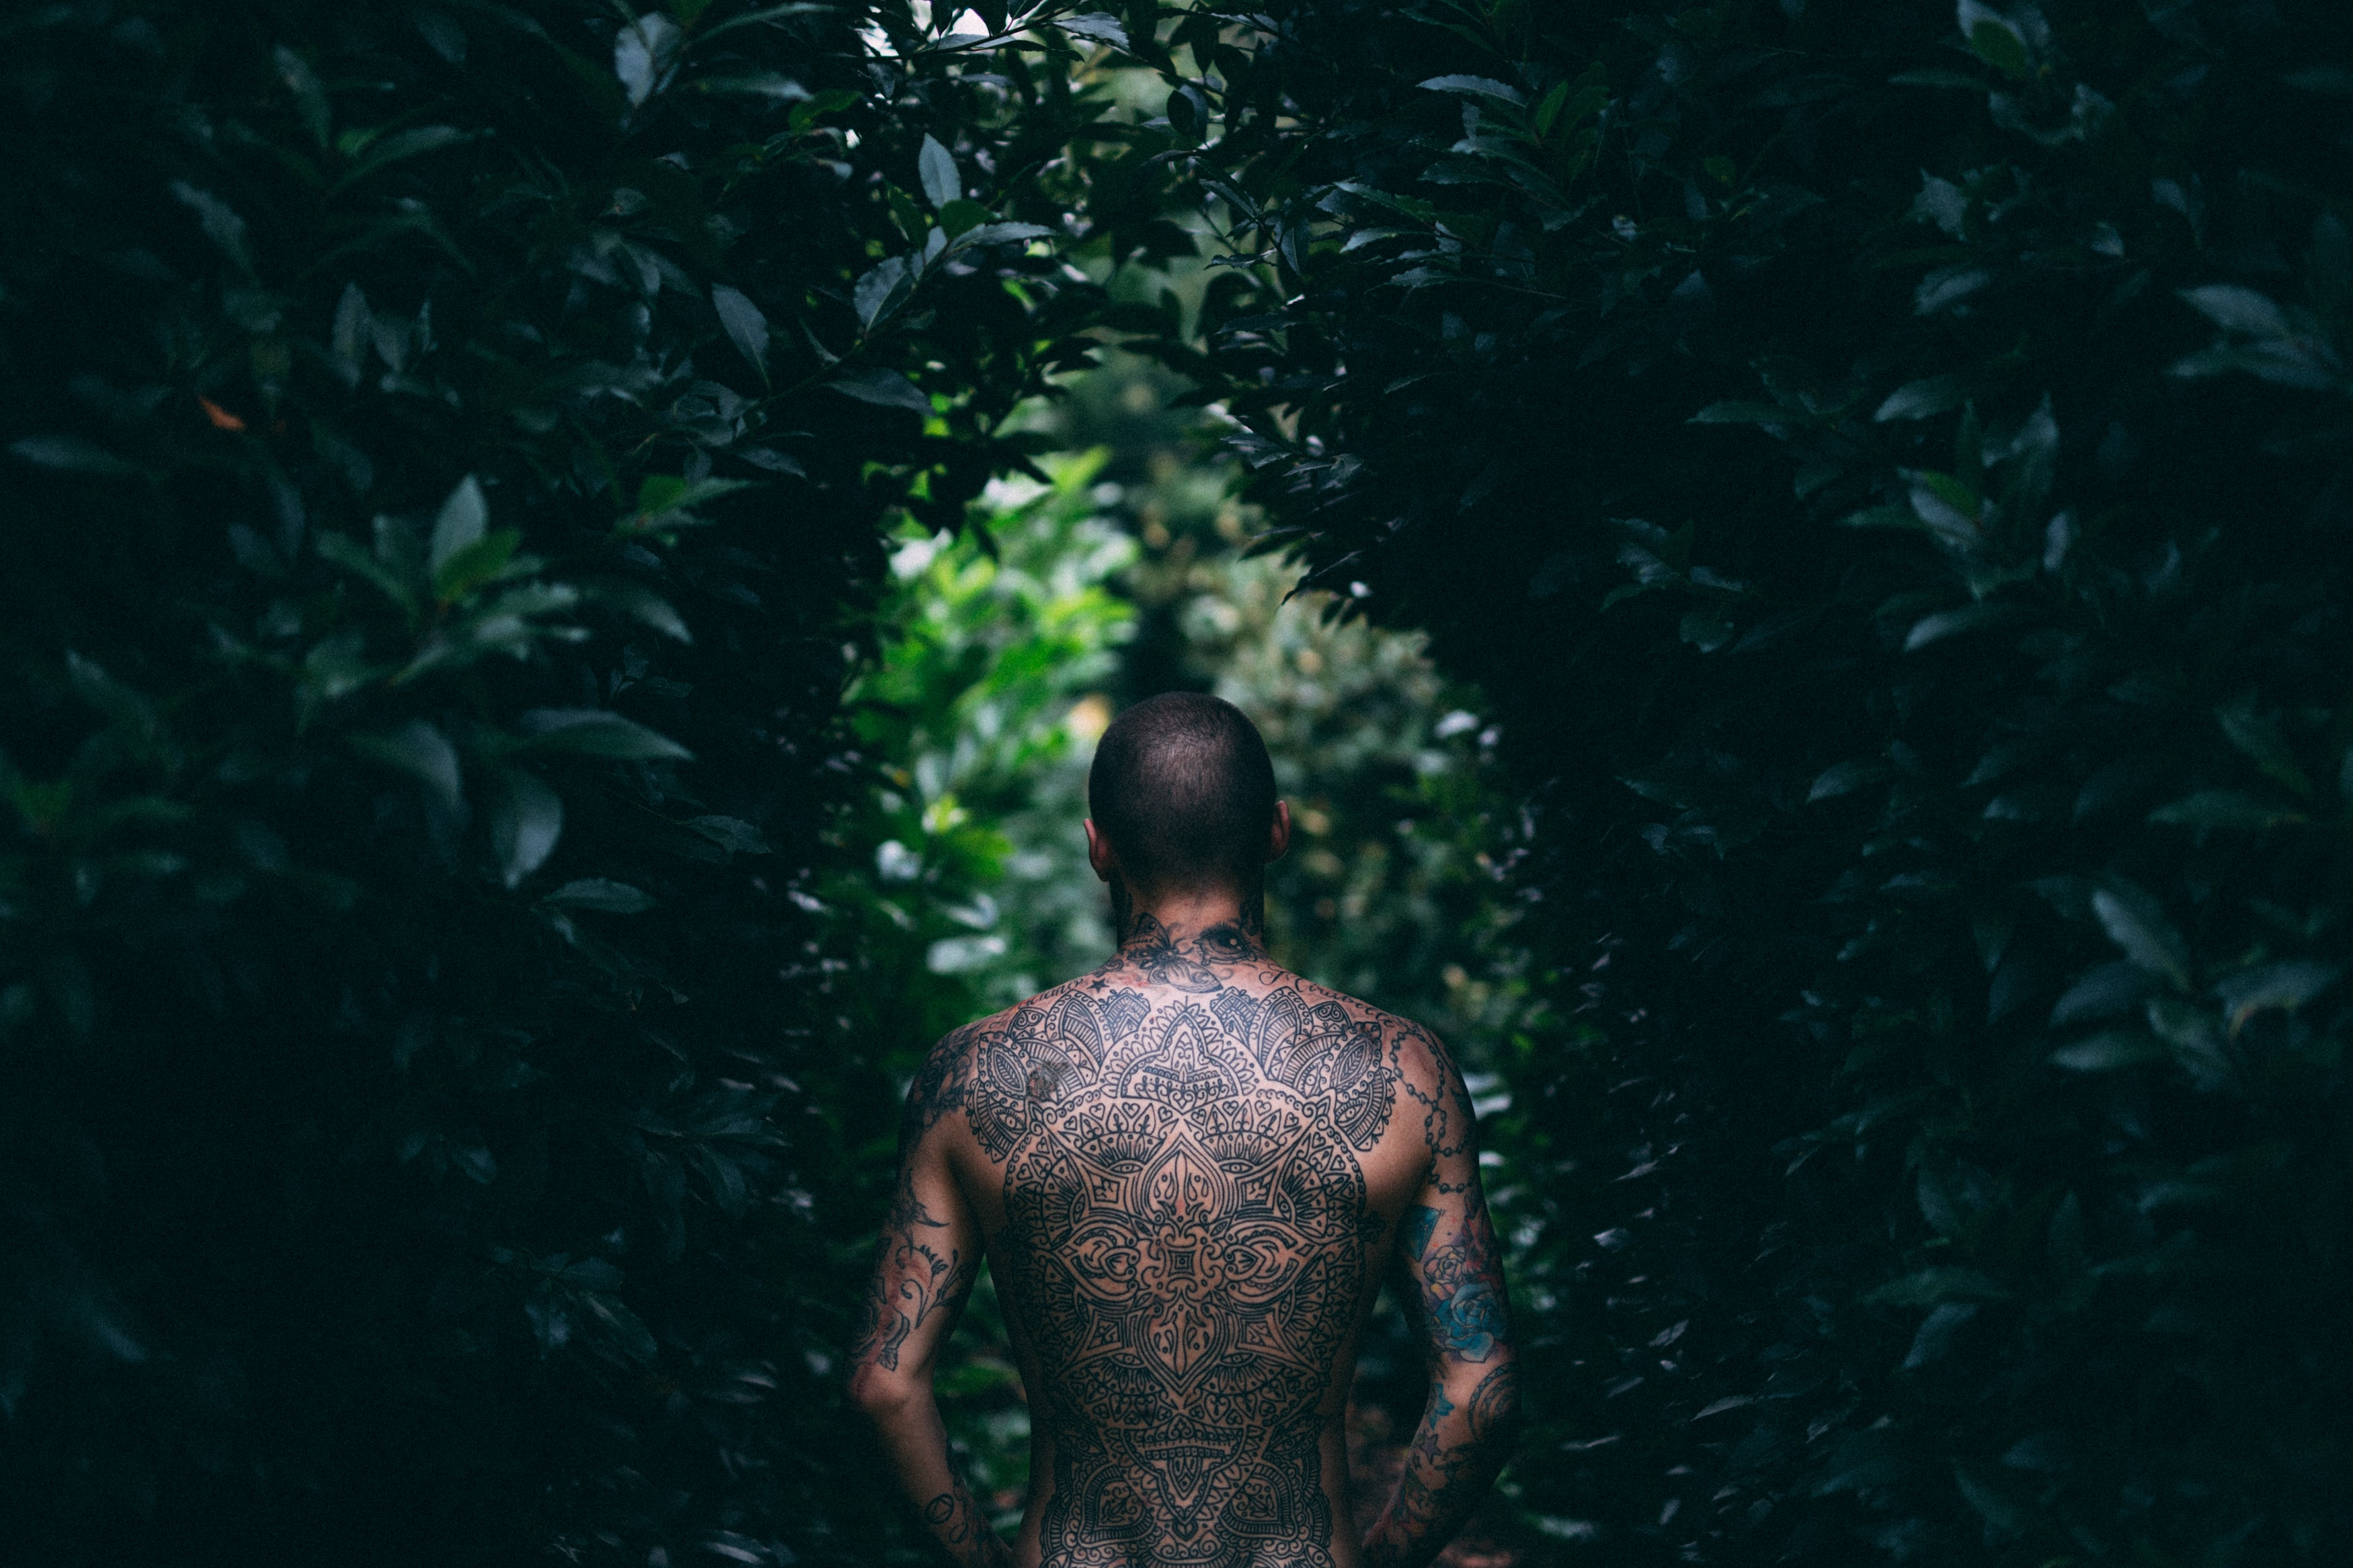 """A man with a fully tattooed back stares down a narrow pathway, encased with trees and bushes, """"Leafy Lane"""""""